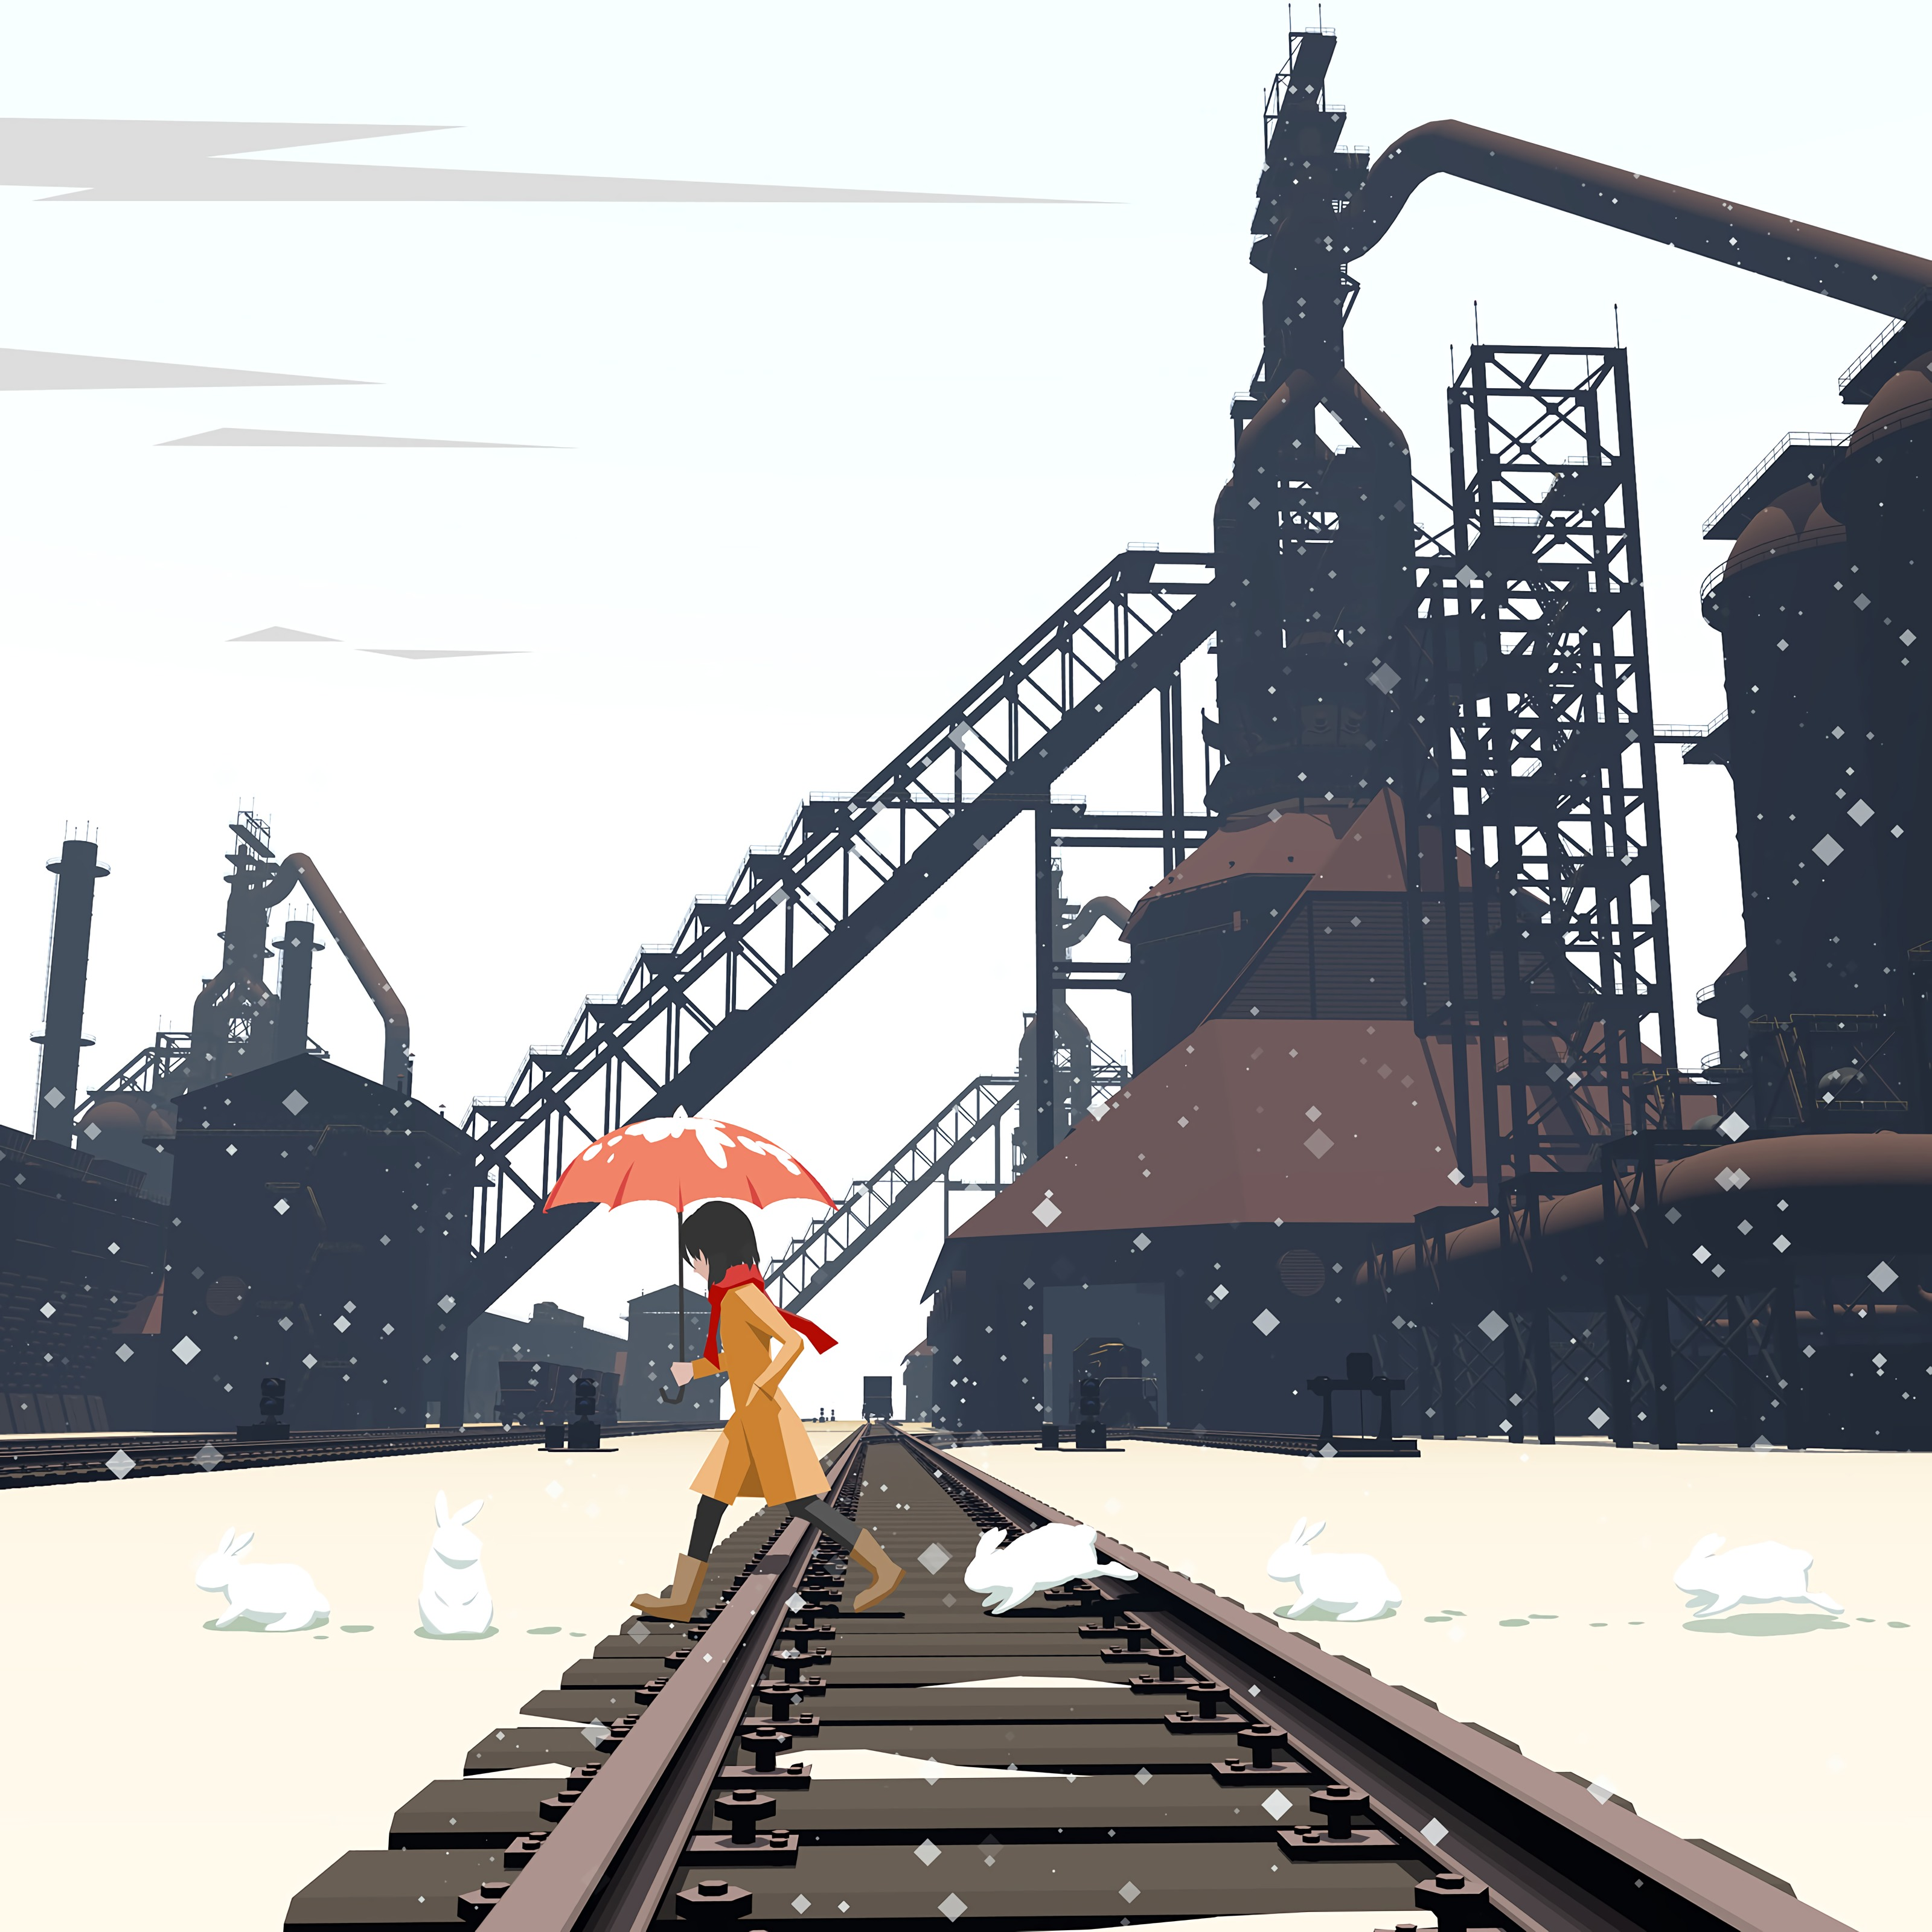 120341 download wallpaper Art, Rabbits, Girl, Railway screensavers and pictures for free